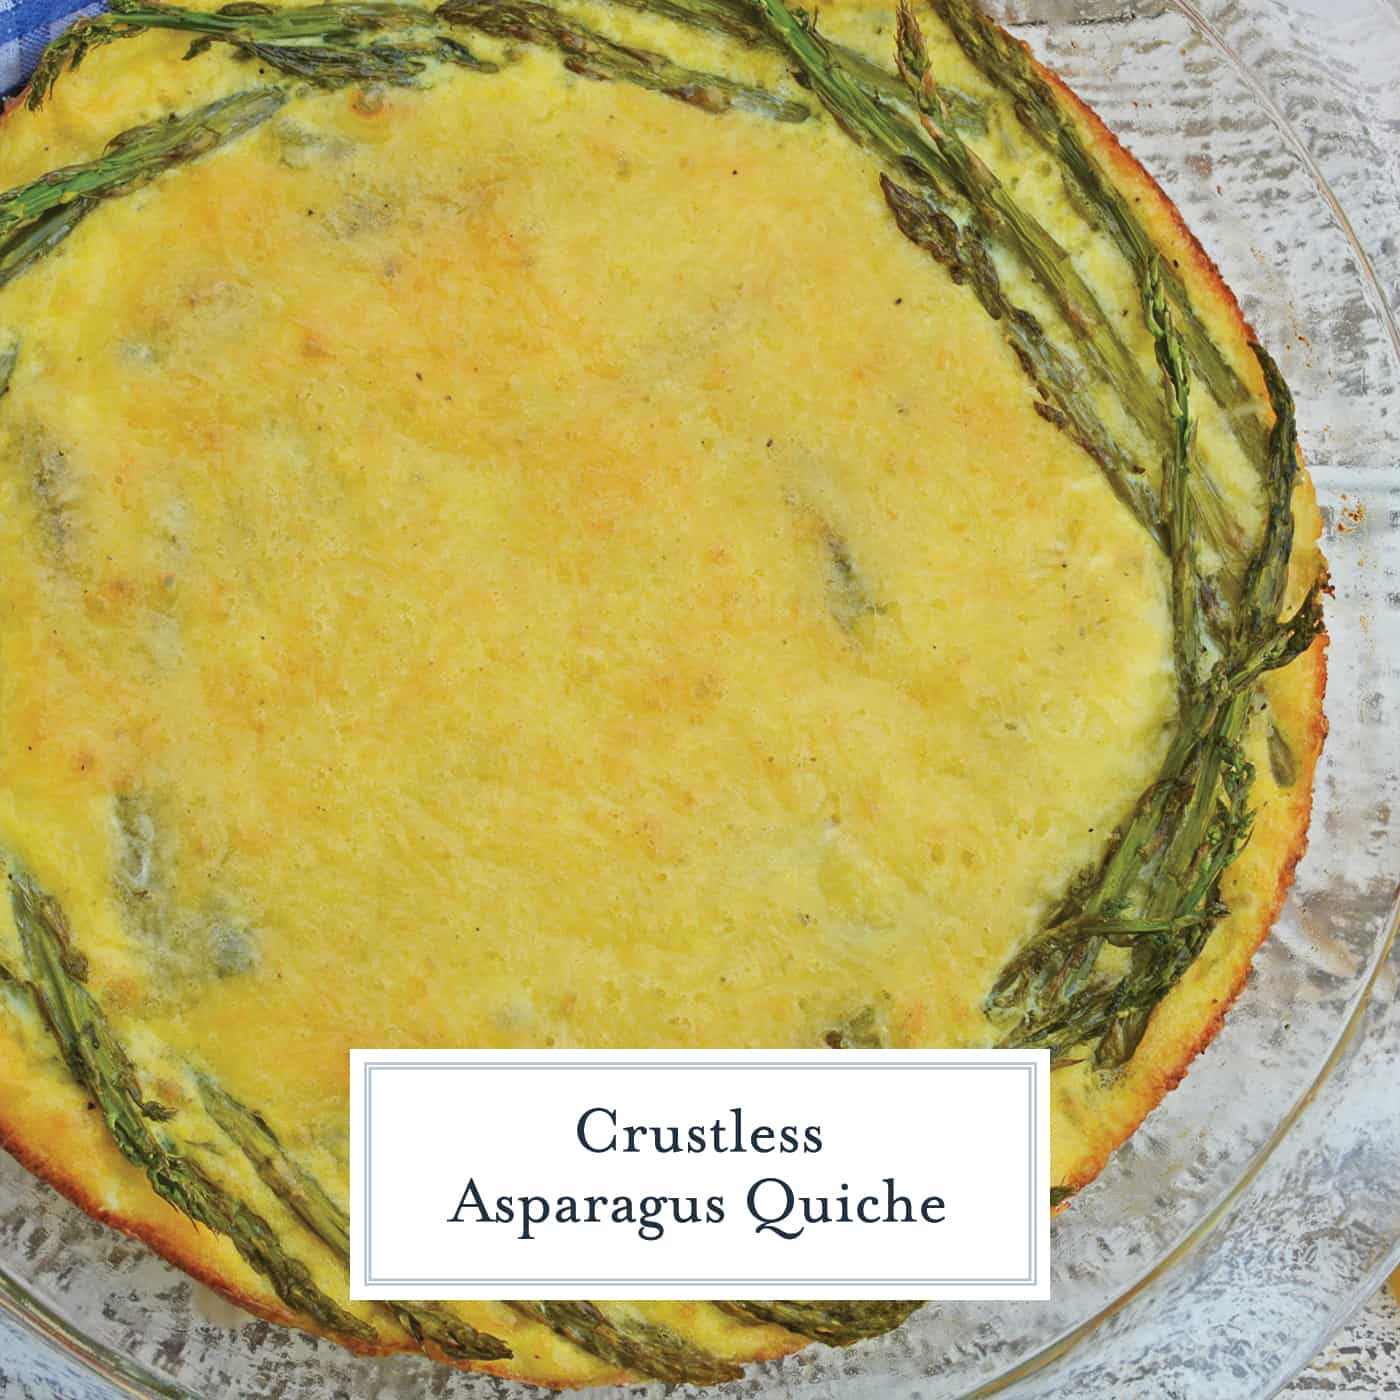 This crustless quiche recipe is one of the best asparagus recipes. An asparagus quiche would be a great addition to your next breakfast, brunch or lunch! #asparagusquicherecipe #crustlessquicherecipe #asparagusrecipes www.savoryexperiments.com